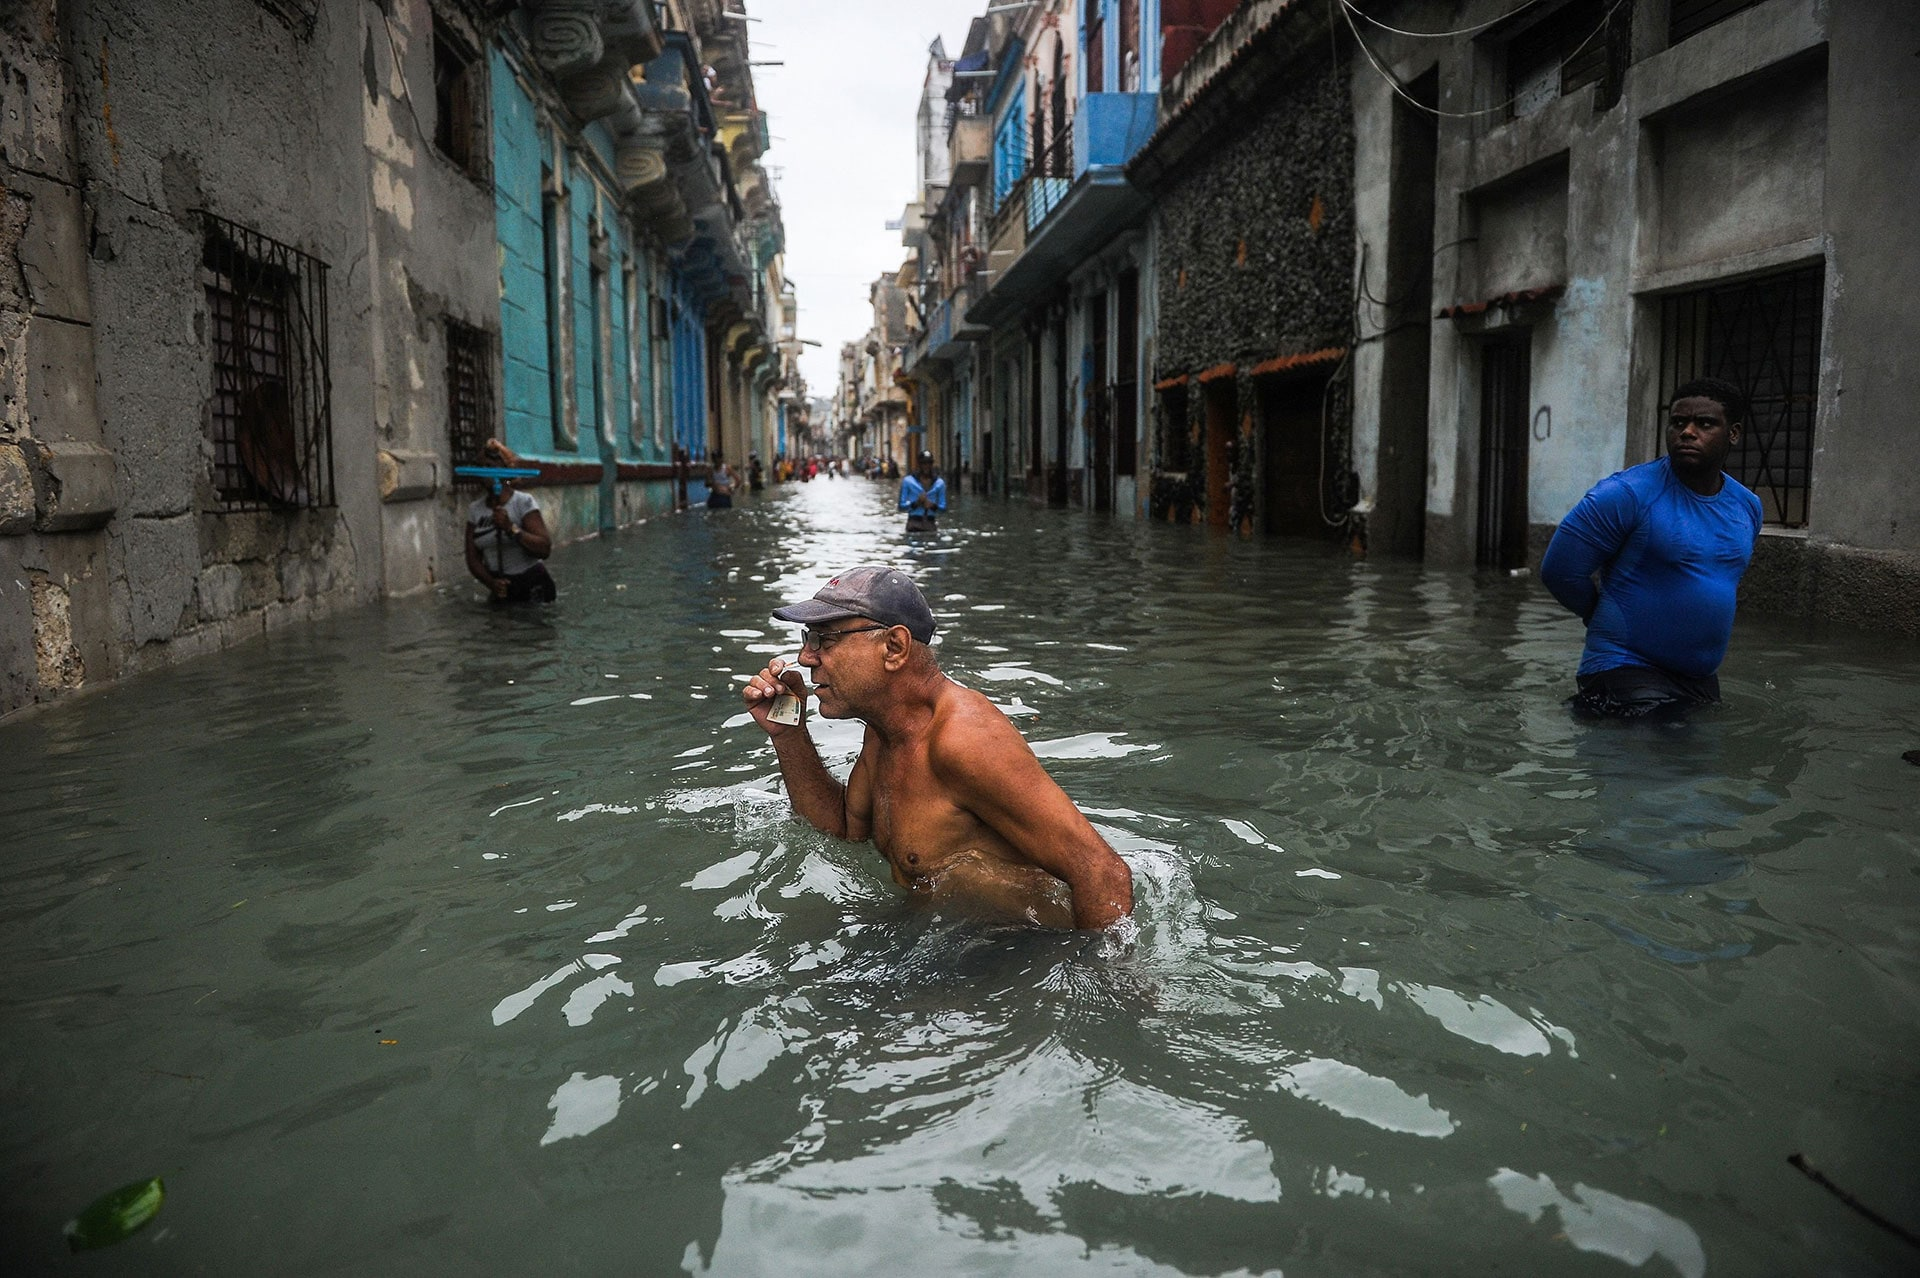 A Cuban man wades through a flooded street in Havana